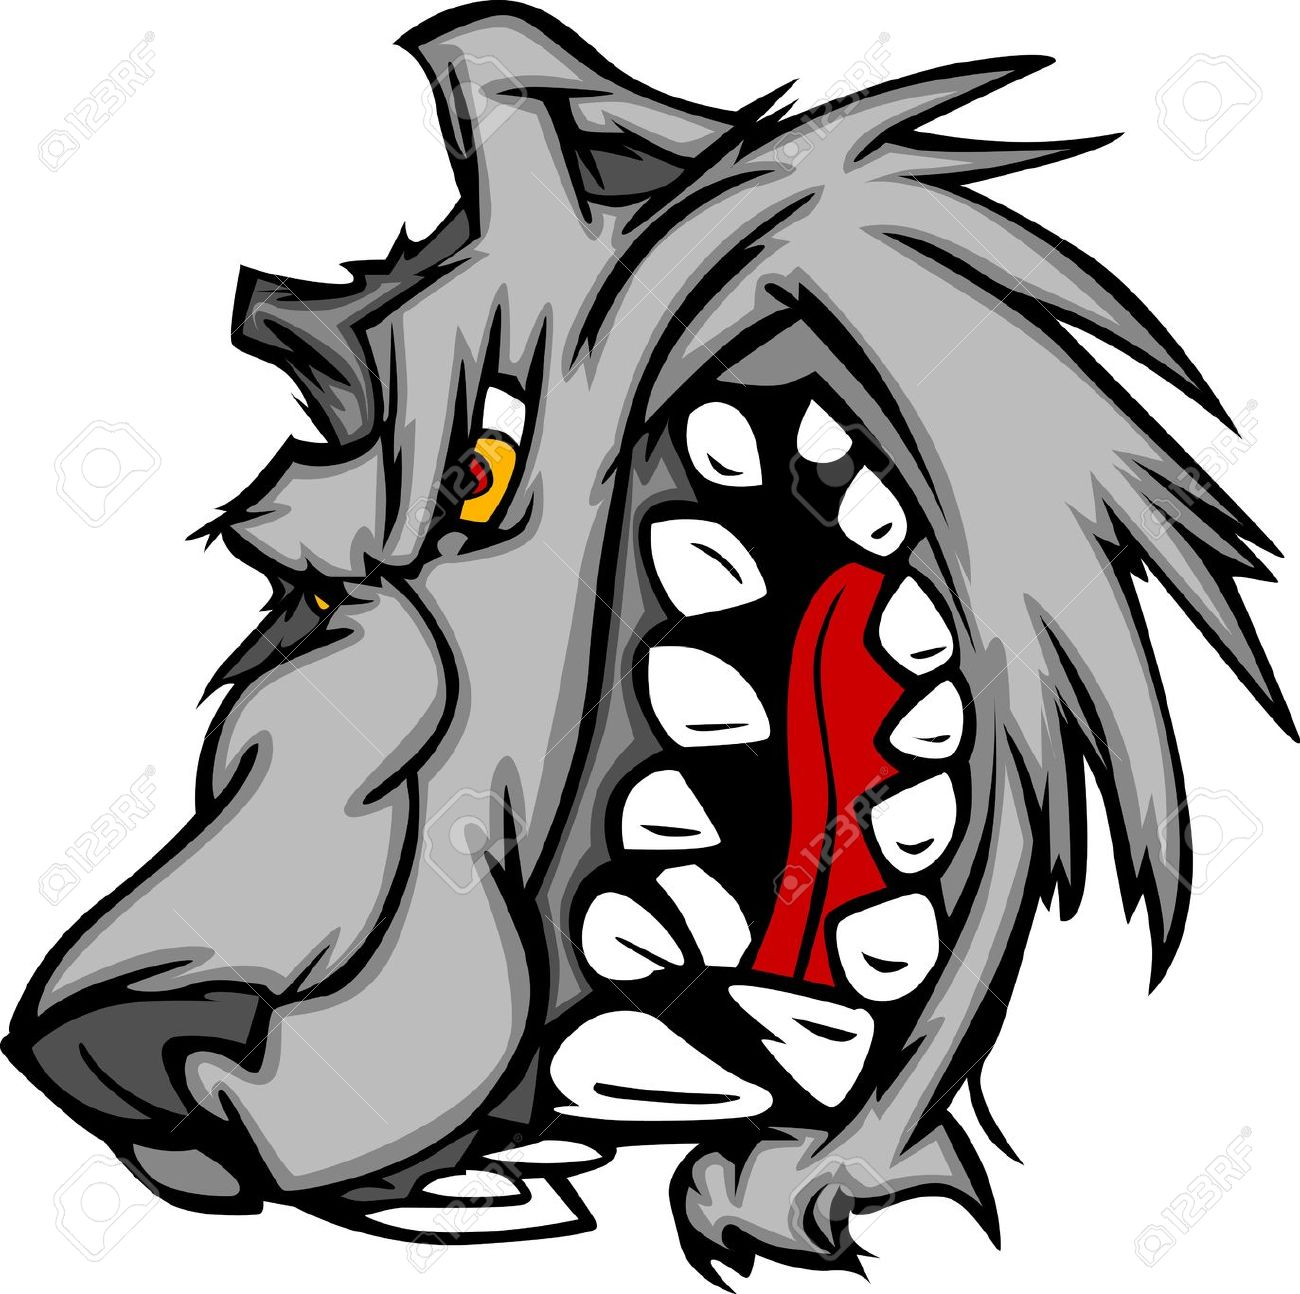 605 Snarling Stock Illustrations, Cliparts And Royalty Free.